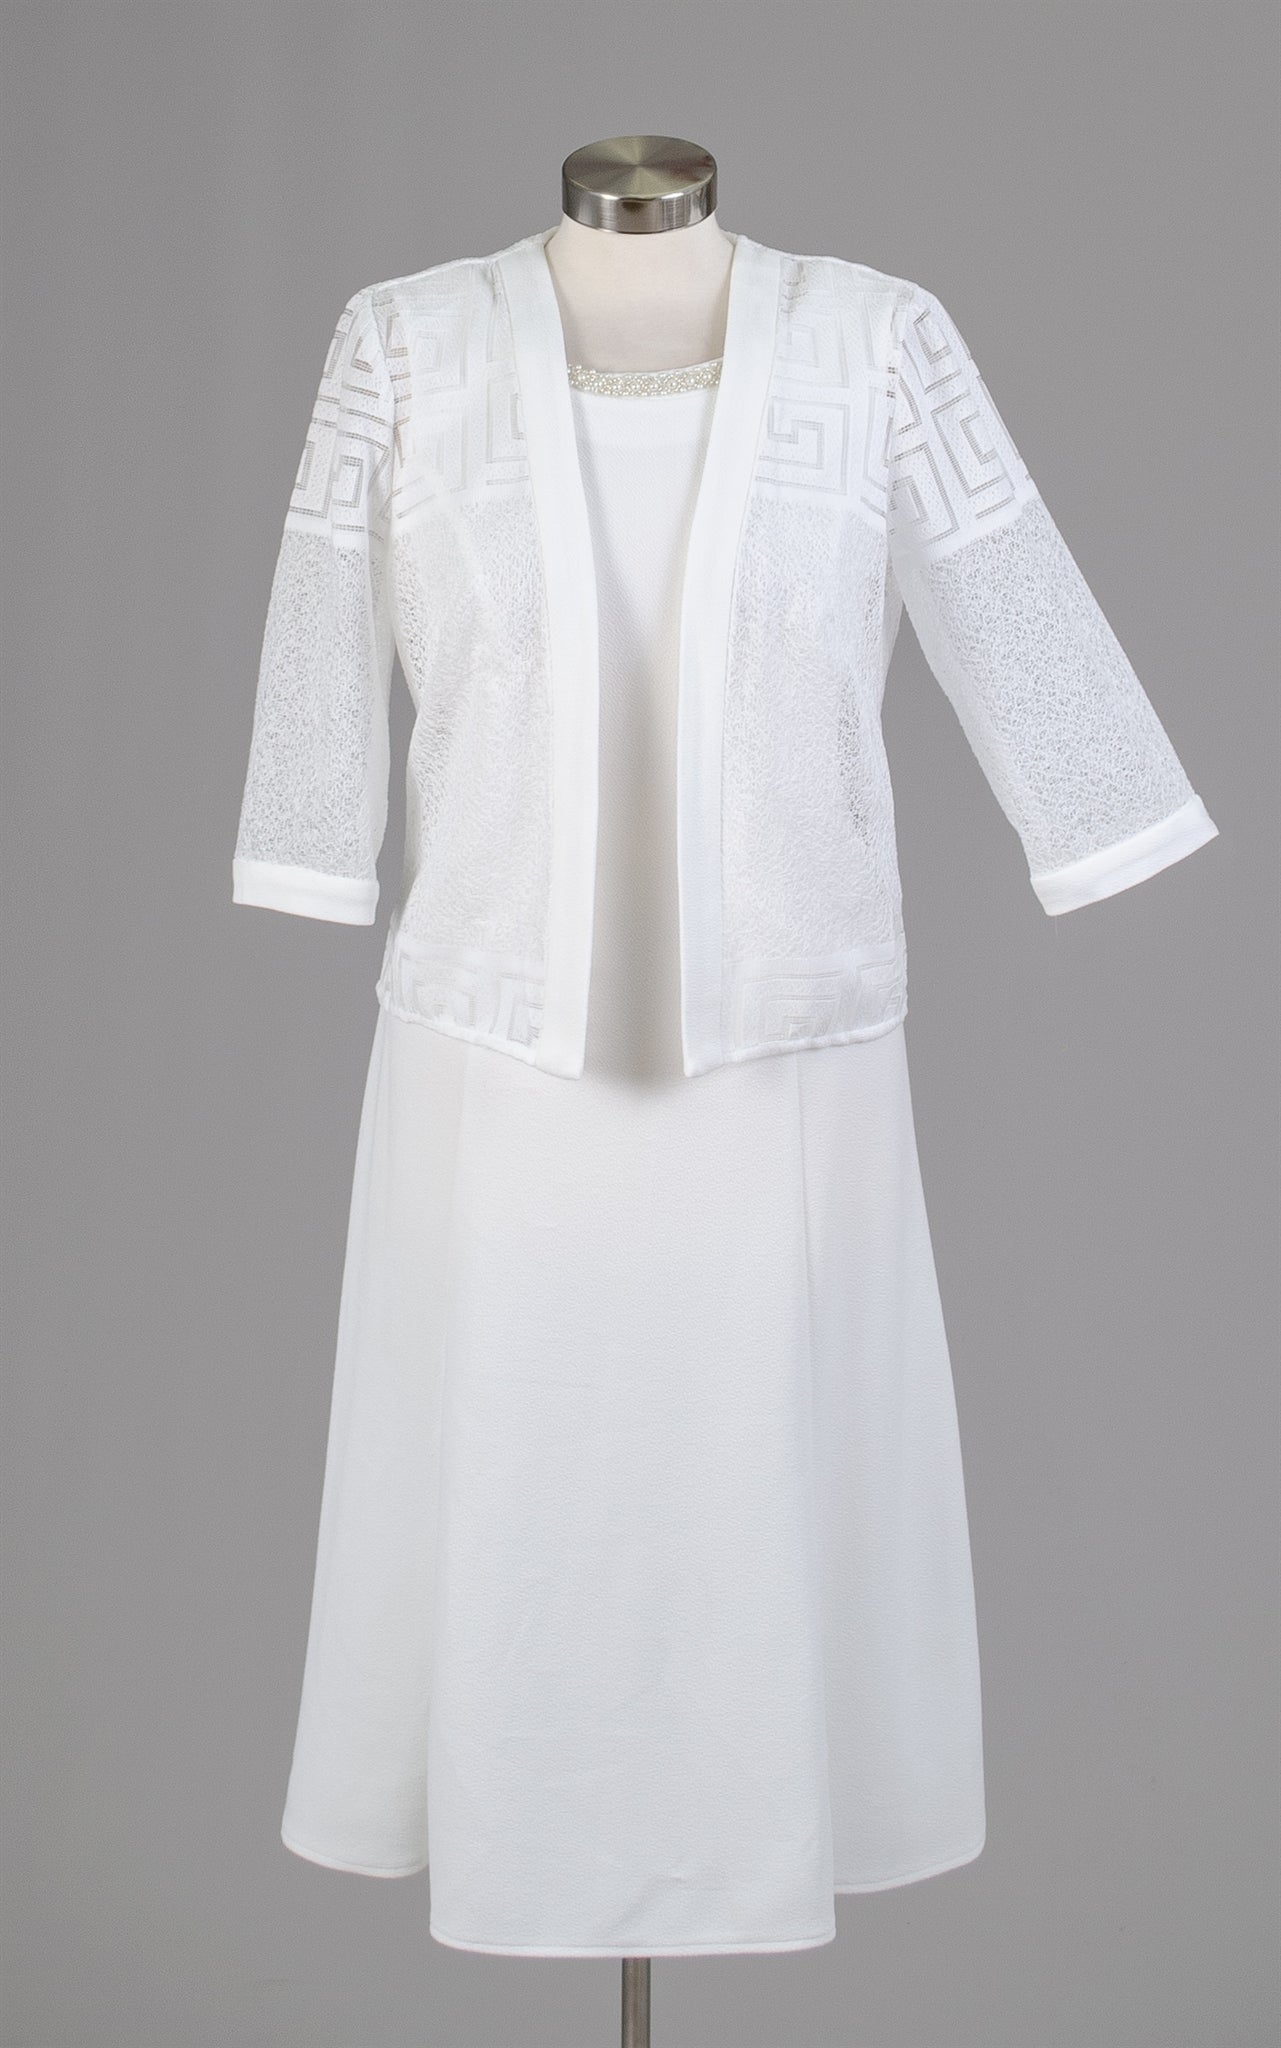 Maya Brook Jacket Dress 28156-White - Church Suits For Less